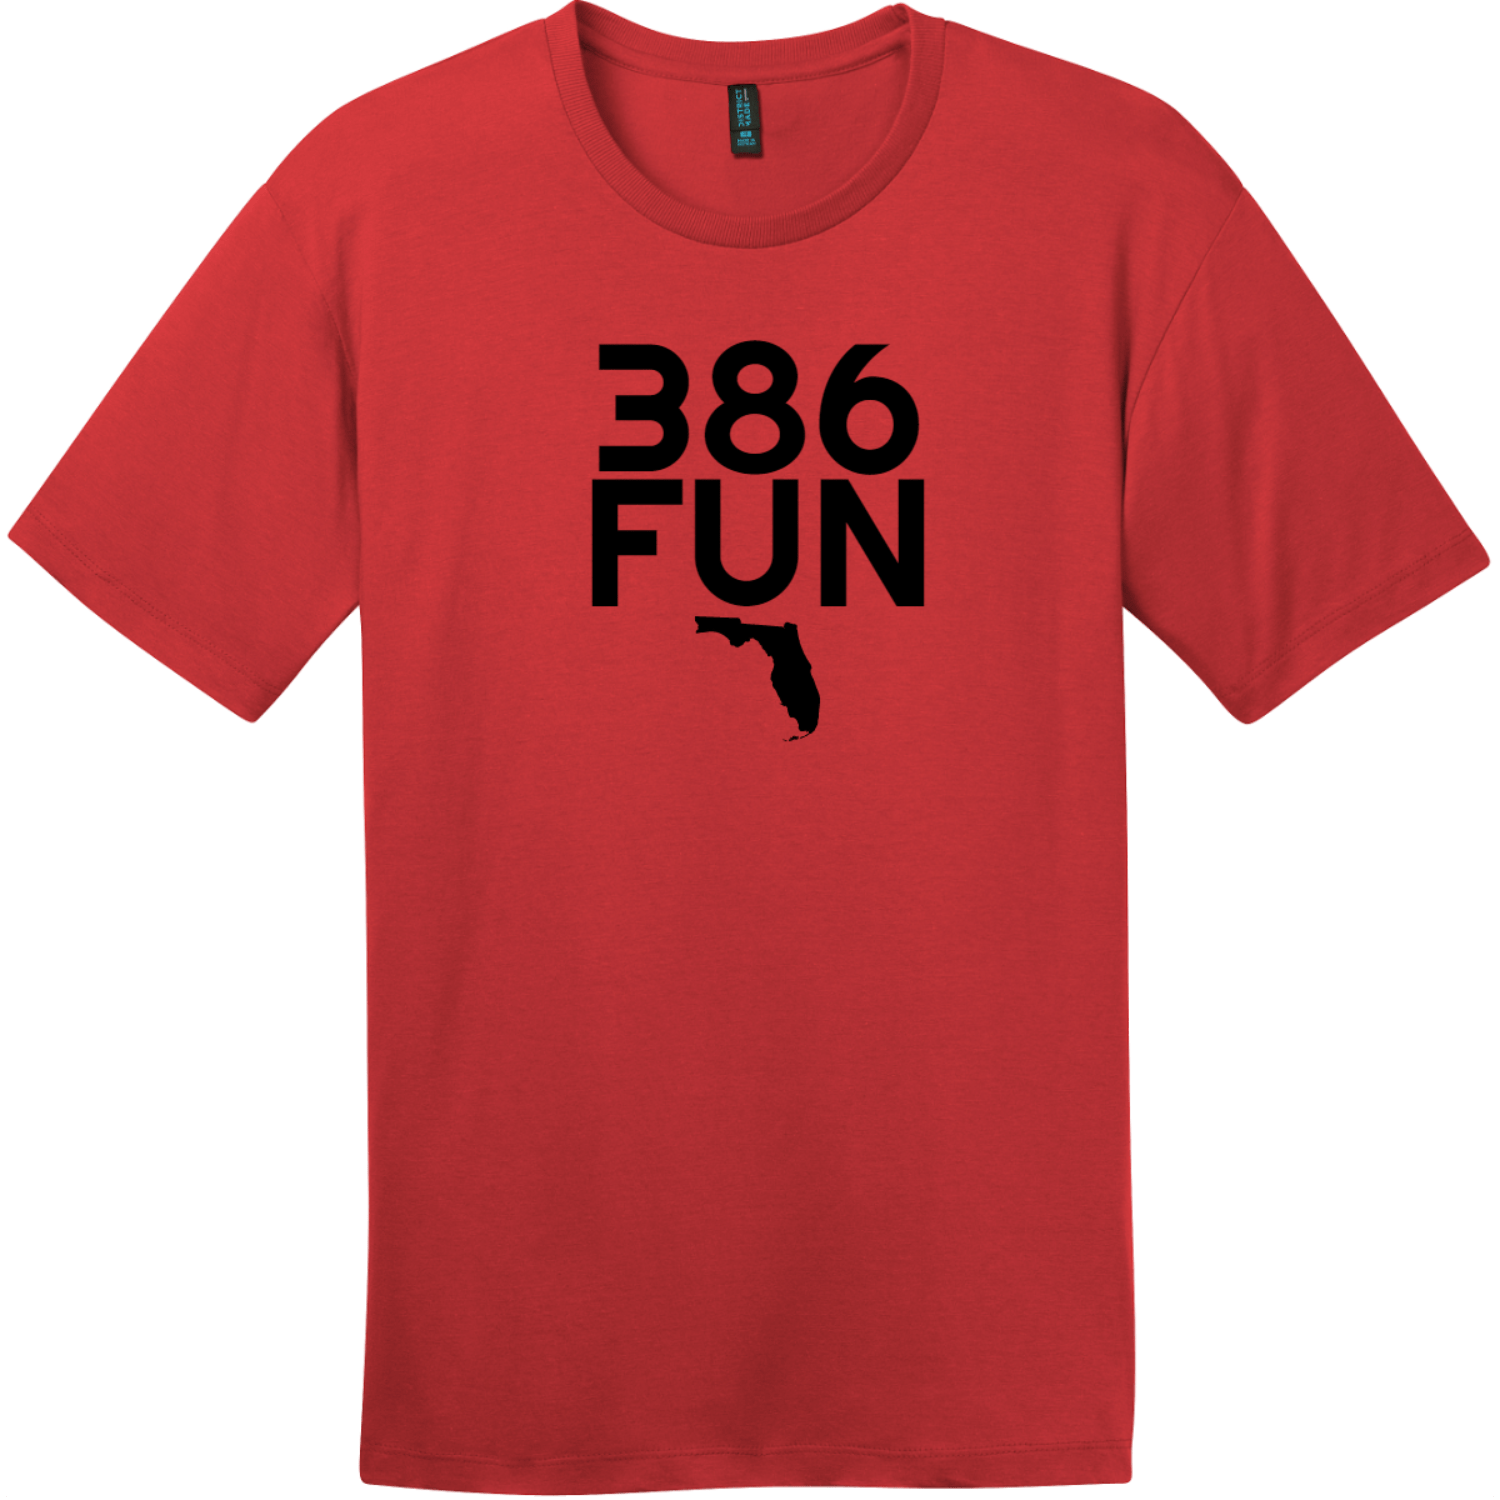 386 Fun Florida T-Shirt Classic Red District Perfect Weight Tee DT104